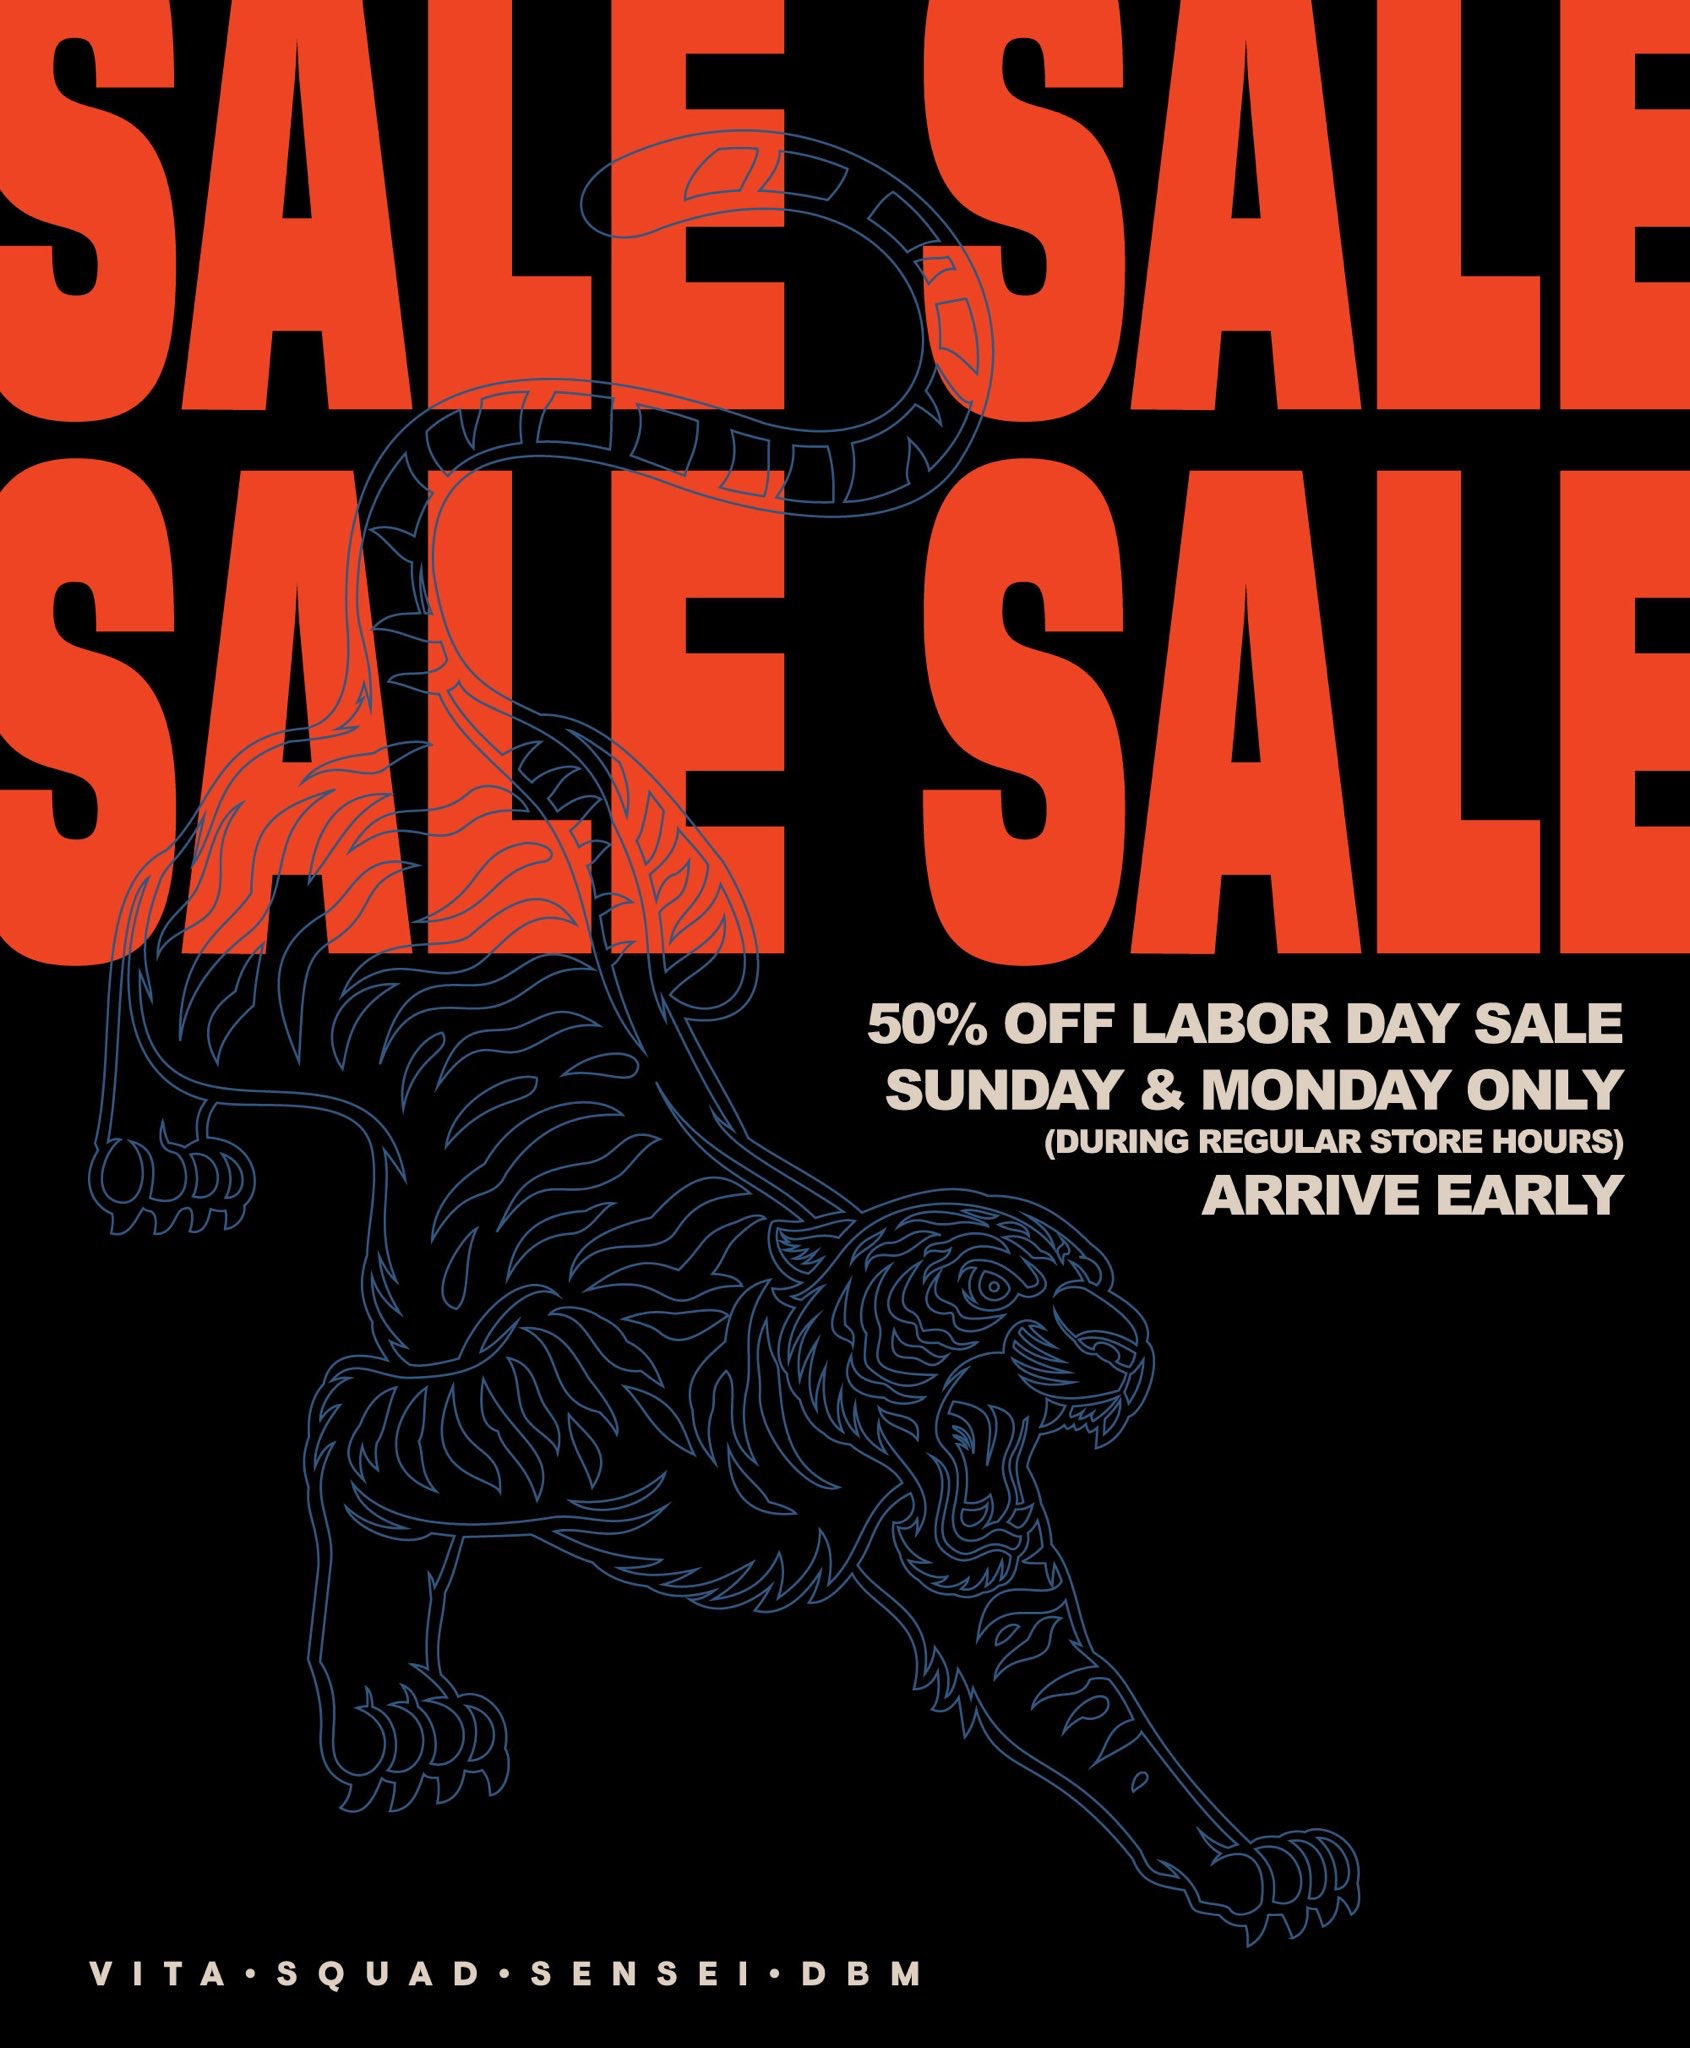 LAST DAY OF THE LABOR DAY SALE!!!  *IN STORE ONLY